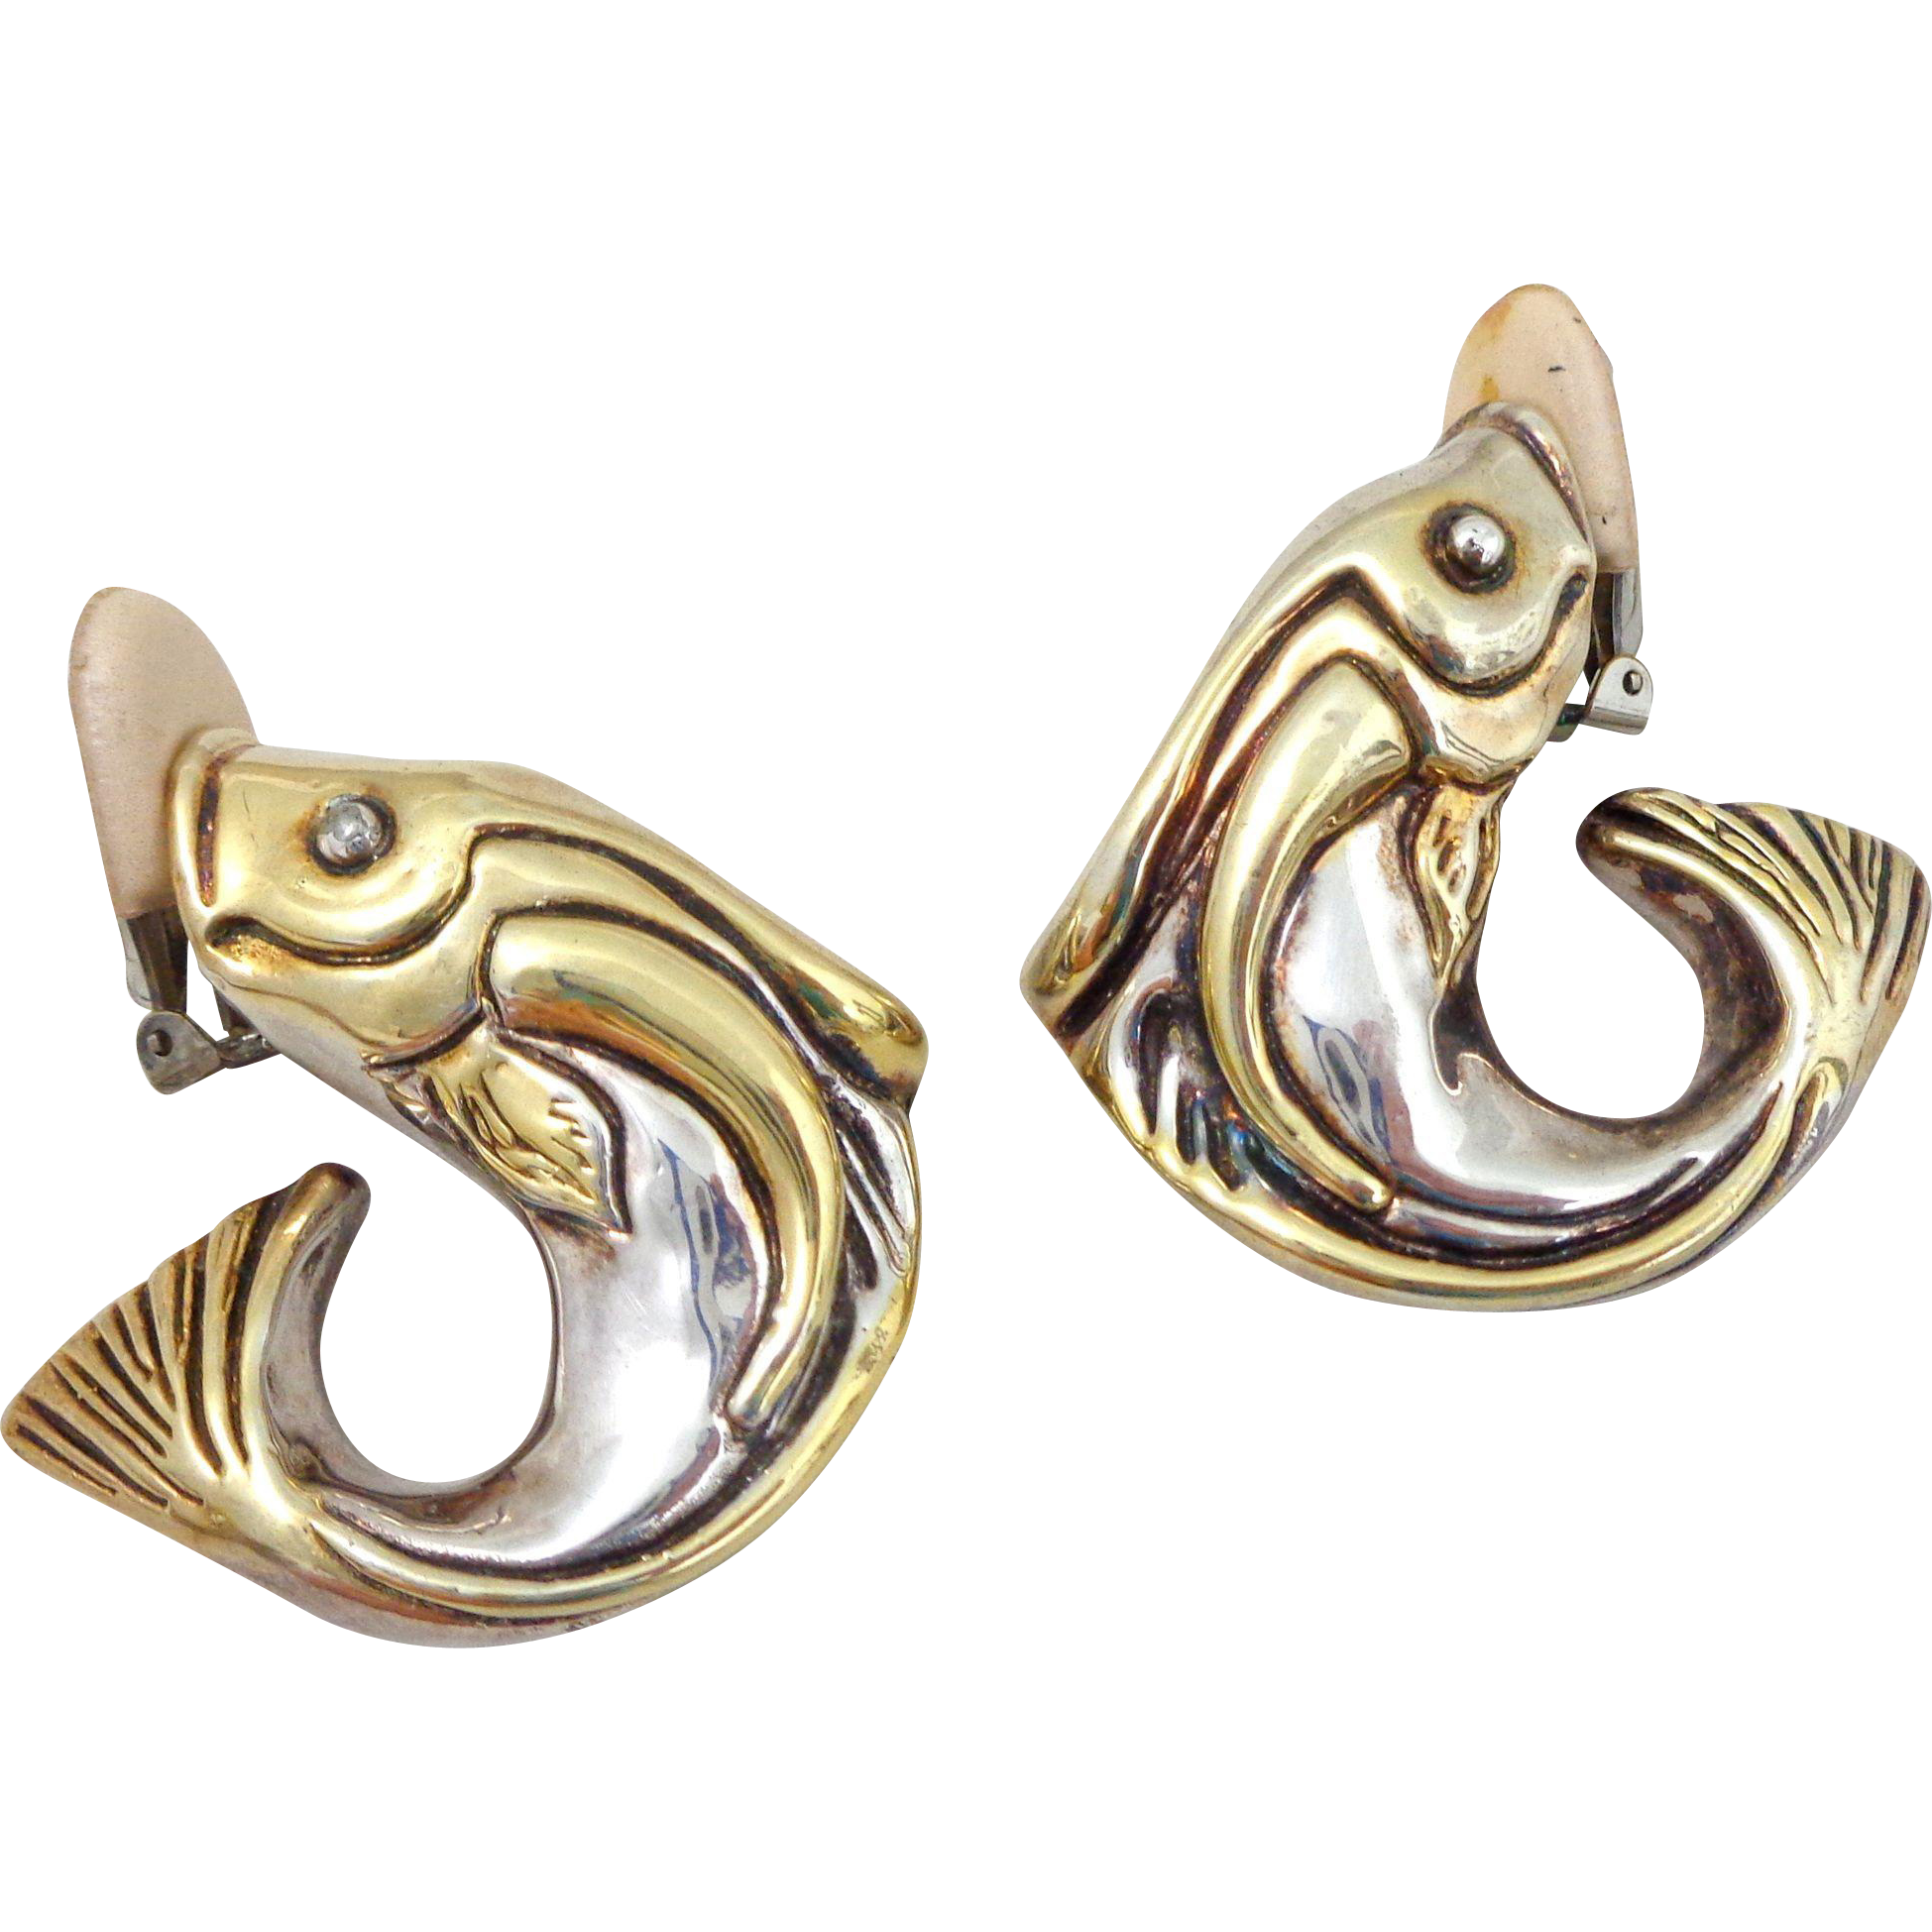 Exquisite Modernist Designer Frederic Jean Duclos Whimsical Sterling Fish Clip Earrings